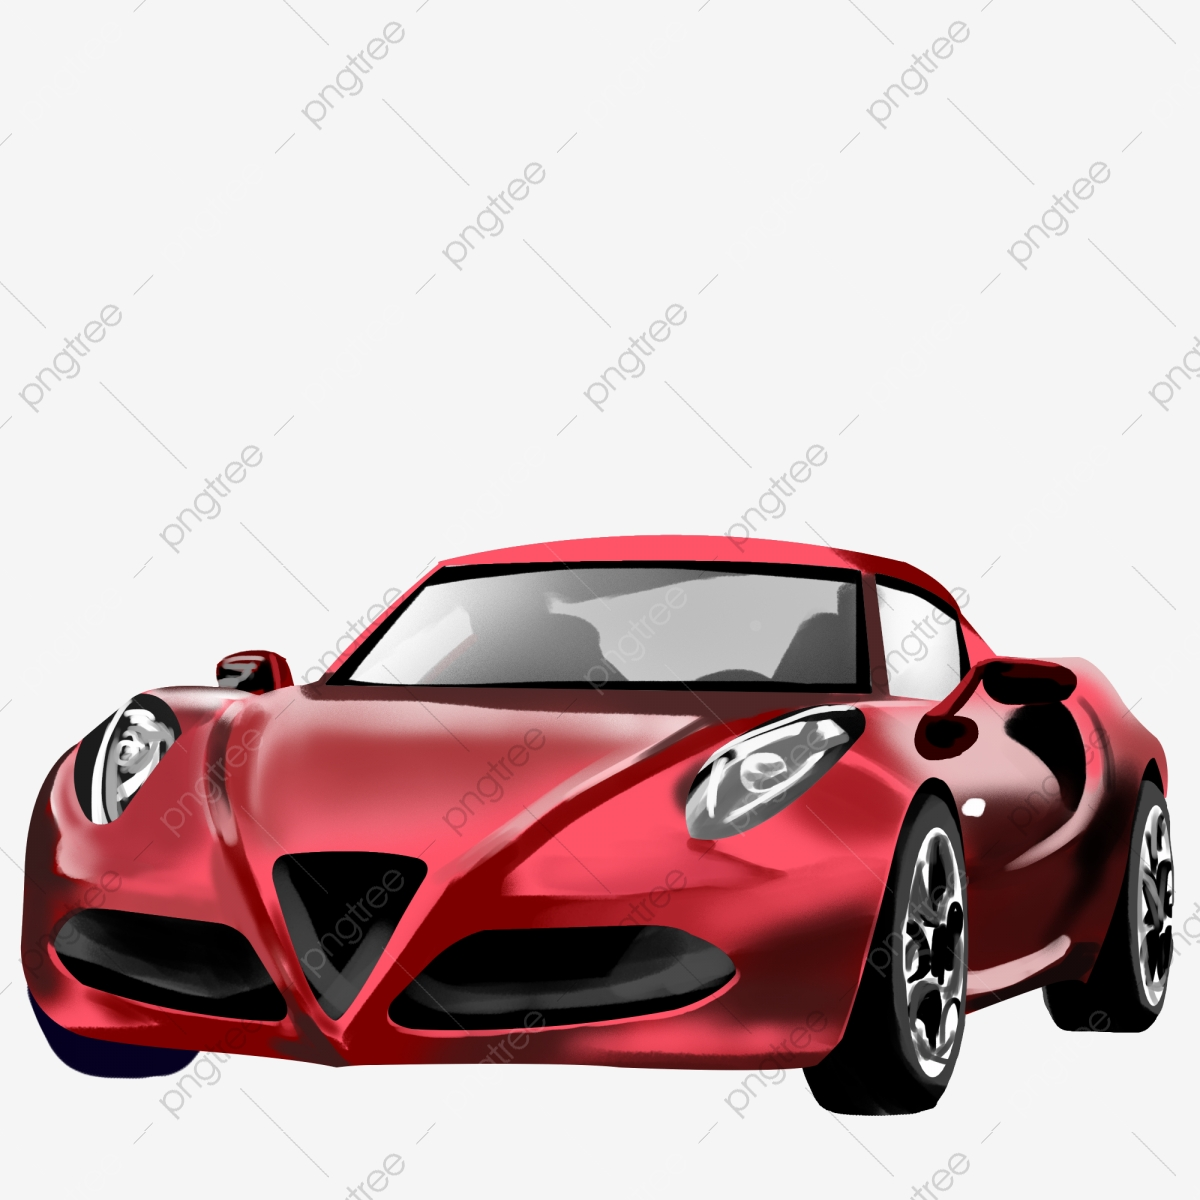 Stylish Luxury Red Sports Car Simulation Illustration Car Clipart Png Red S Car Luxury Png Transparent Clipart Image And Psd File For Free Download